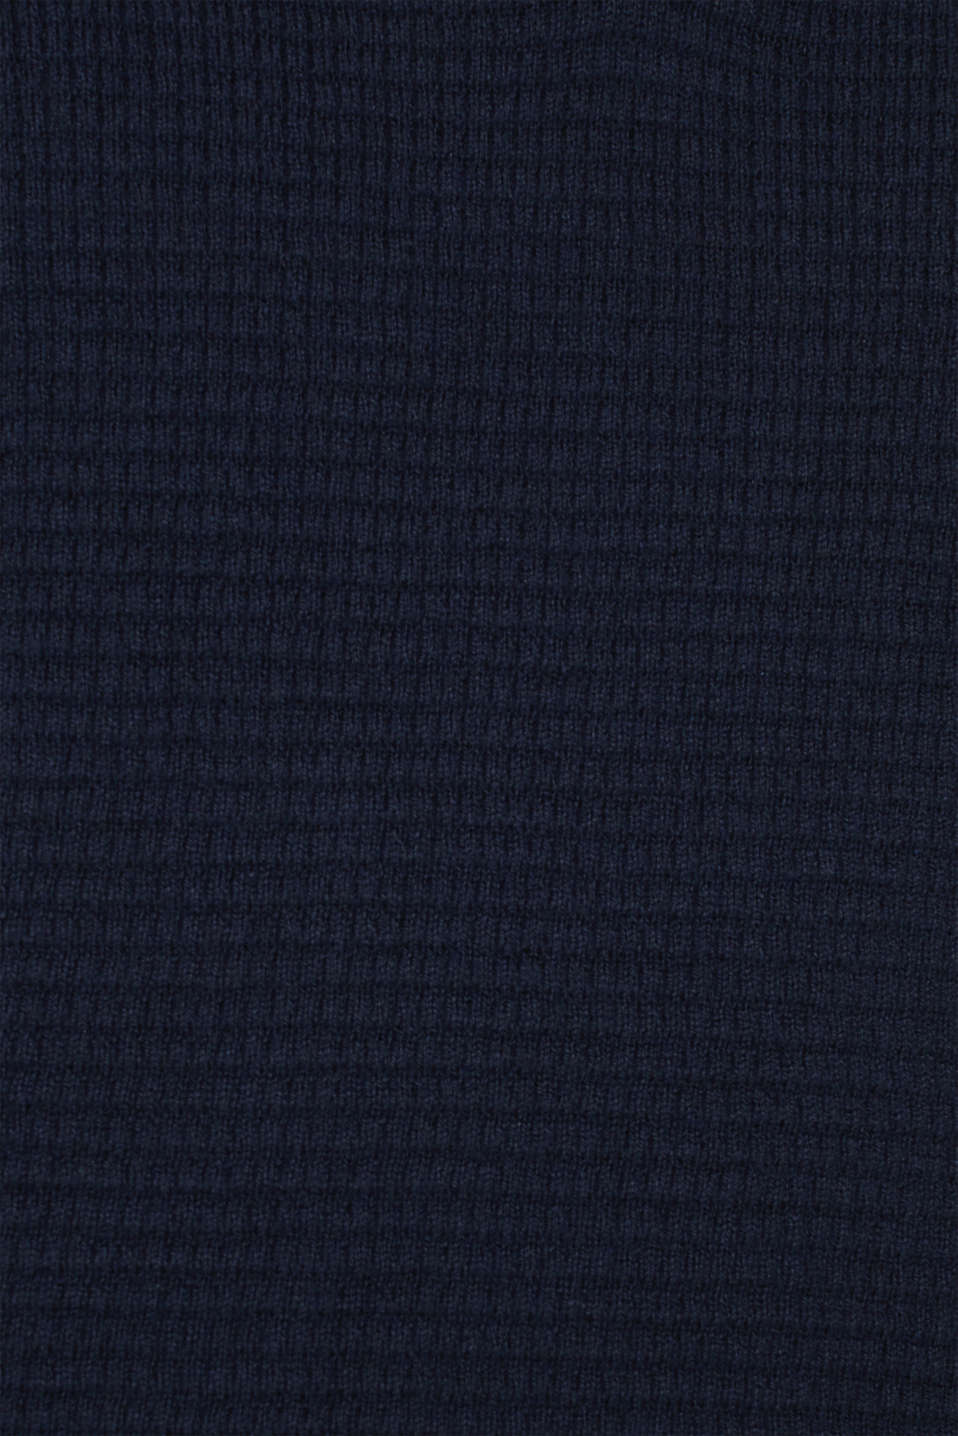 With cashmere: Textured knit jumper, NAVY, detail image number 4